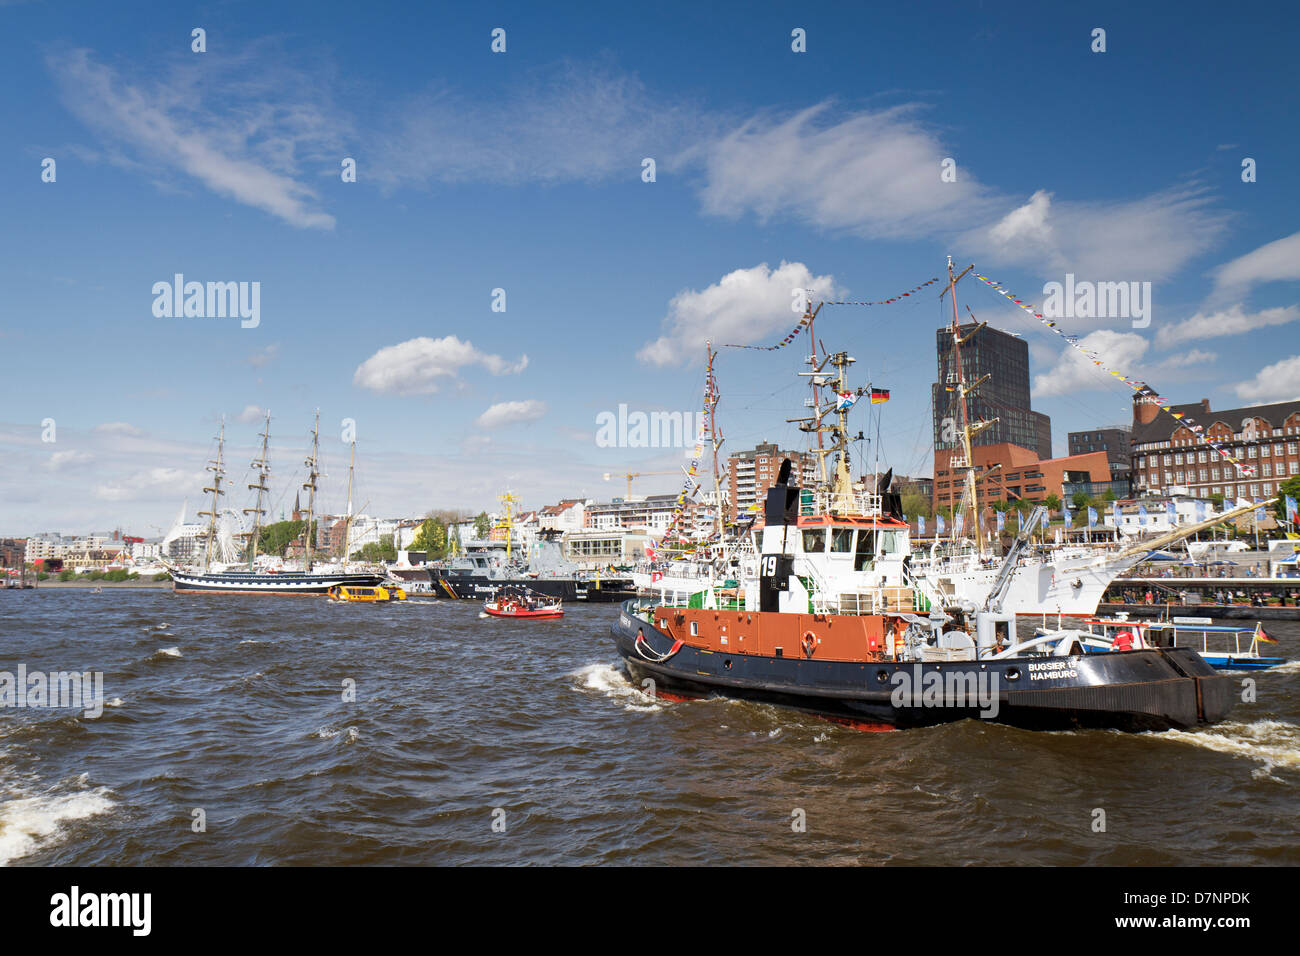 A tug sailing West along the River Elbe in Hamburg during the Hafen Geburtstag. - Stock Image